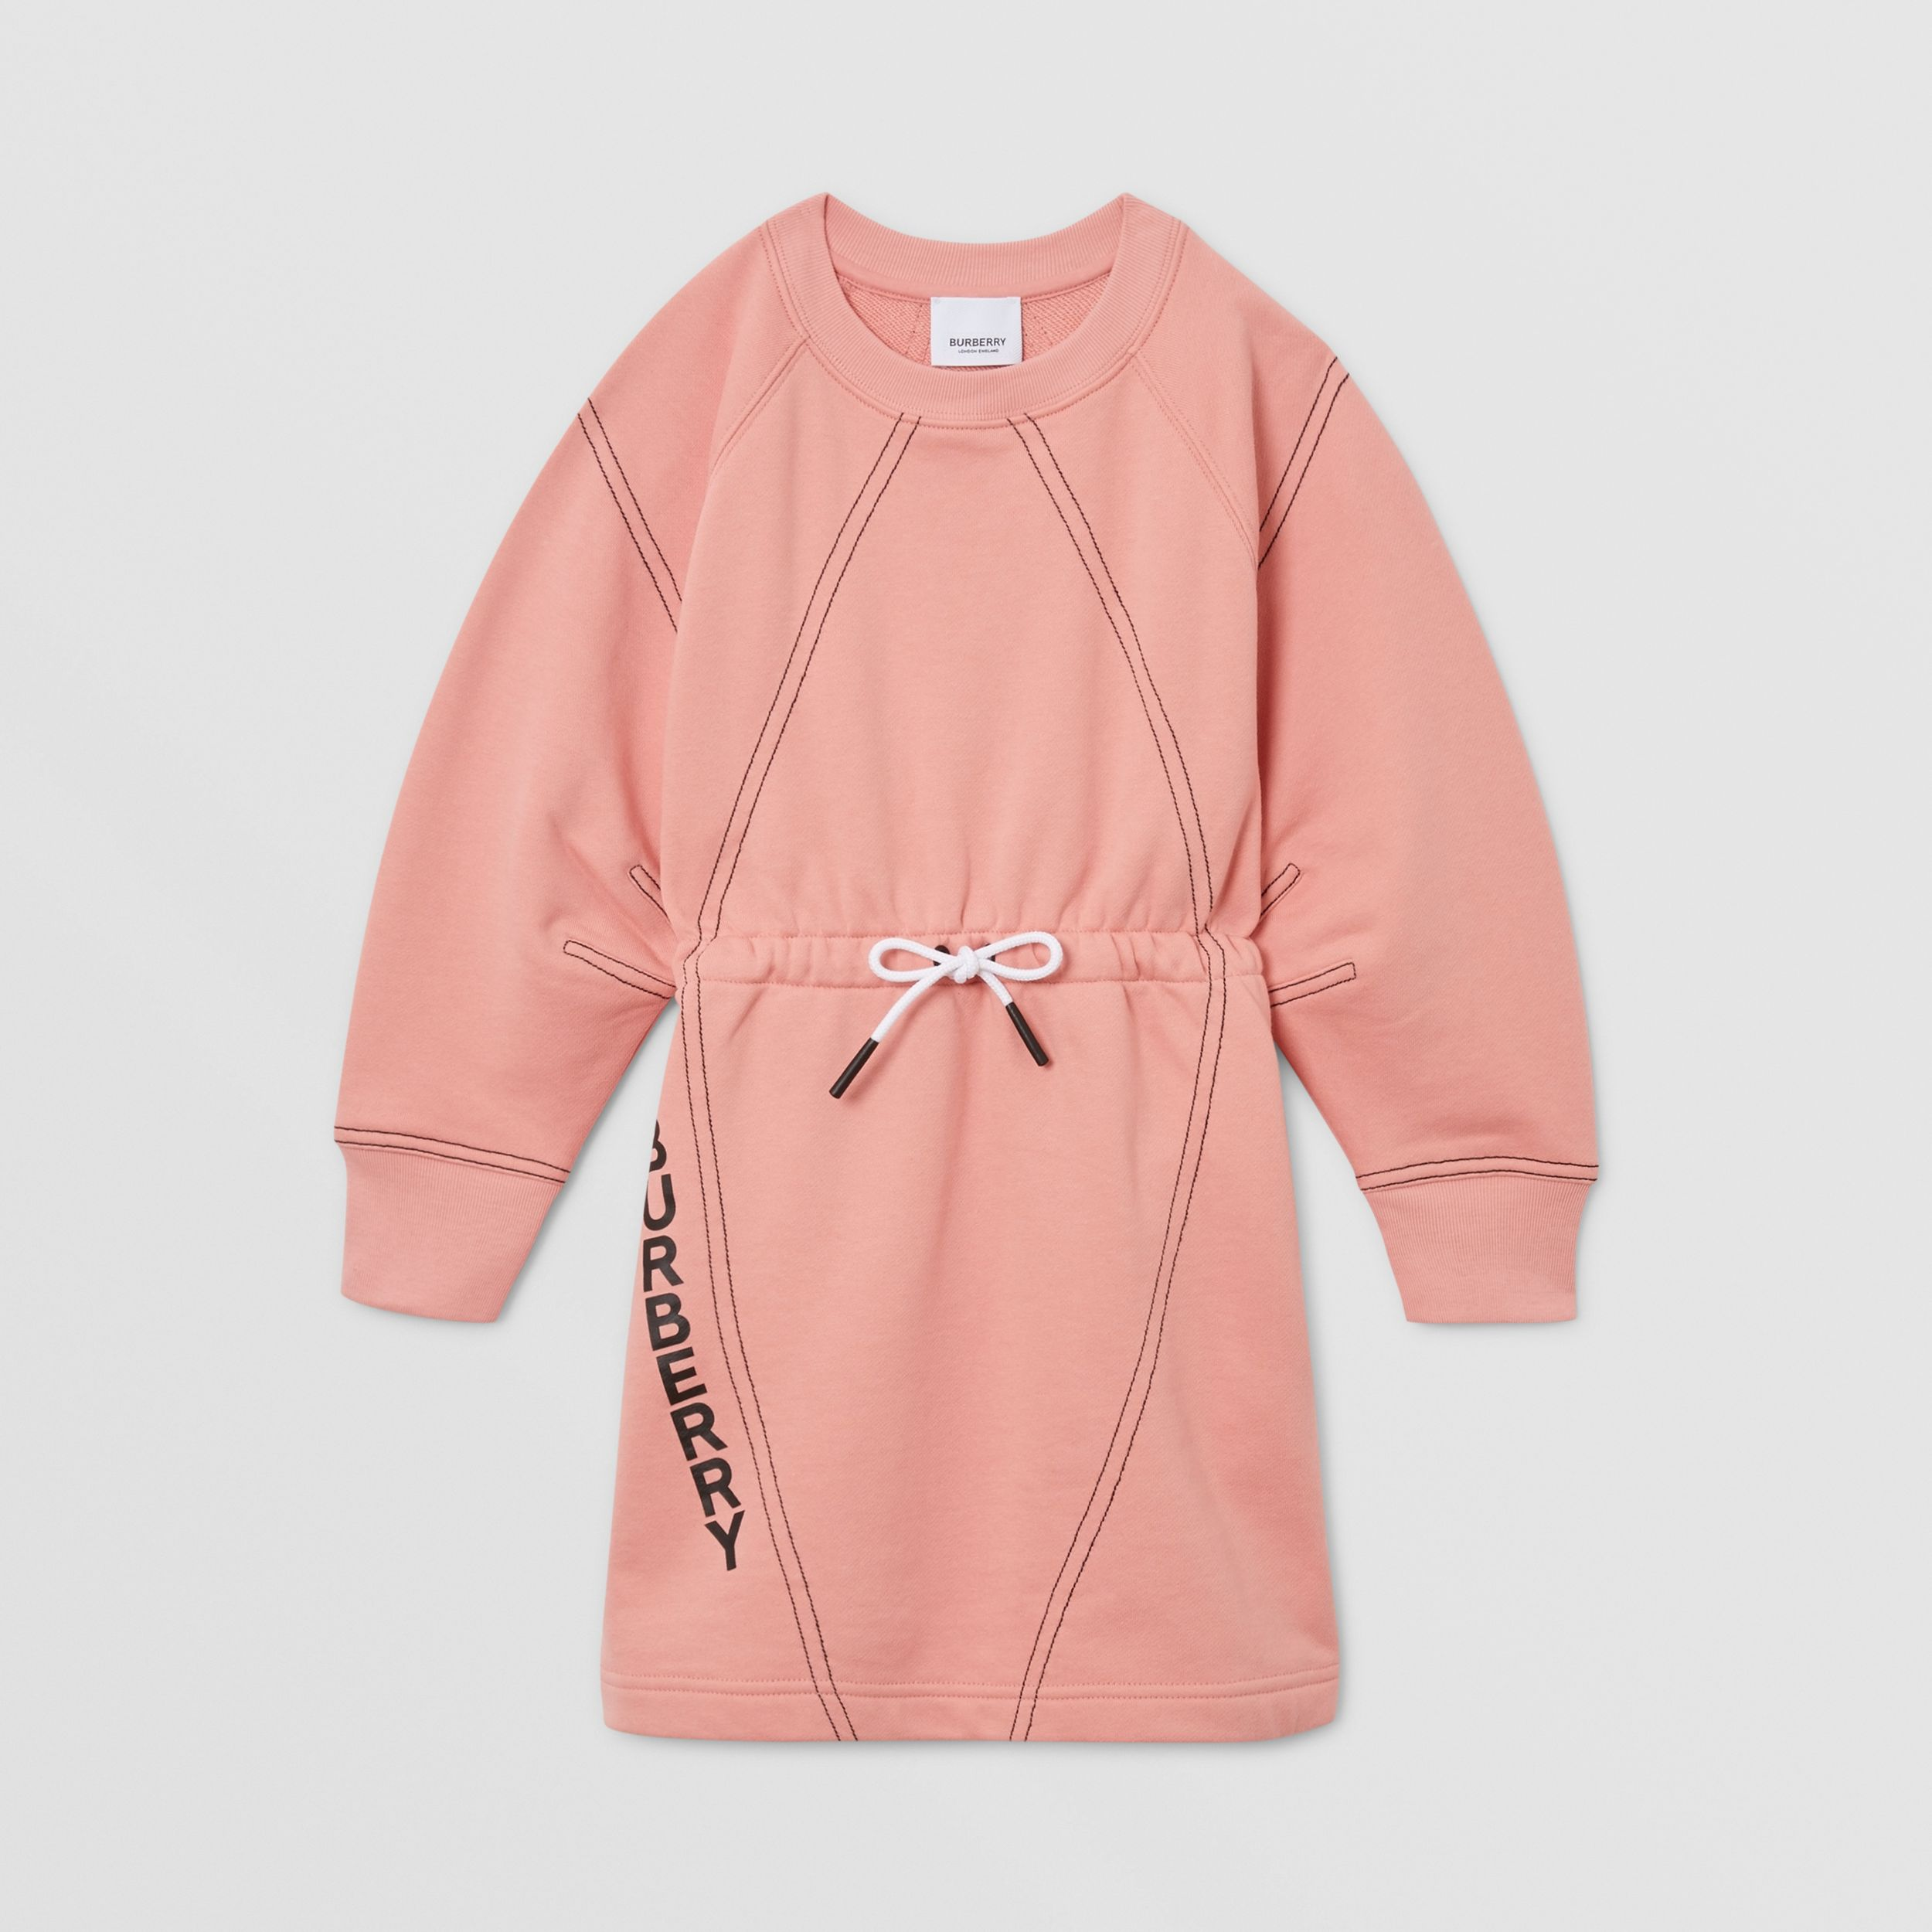 Logo Print Cotton Sweater Dress in Peach | Burberry - 1